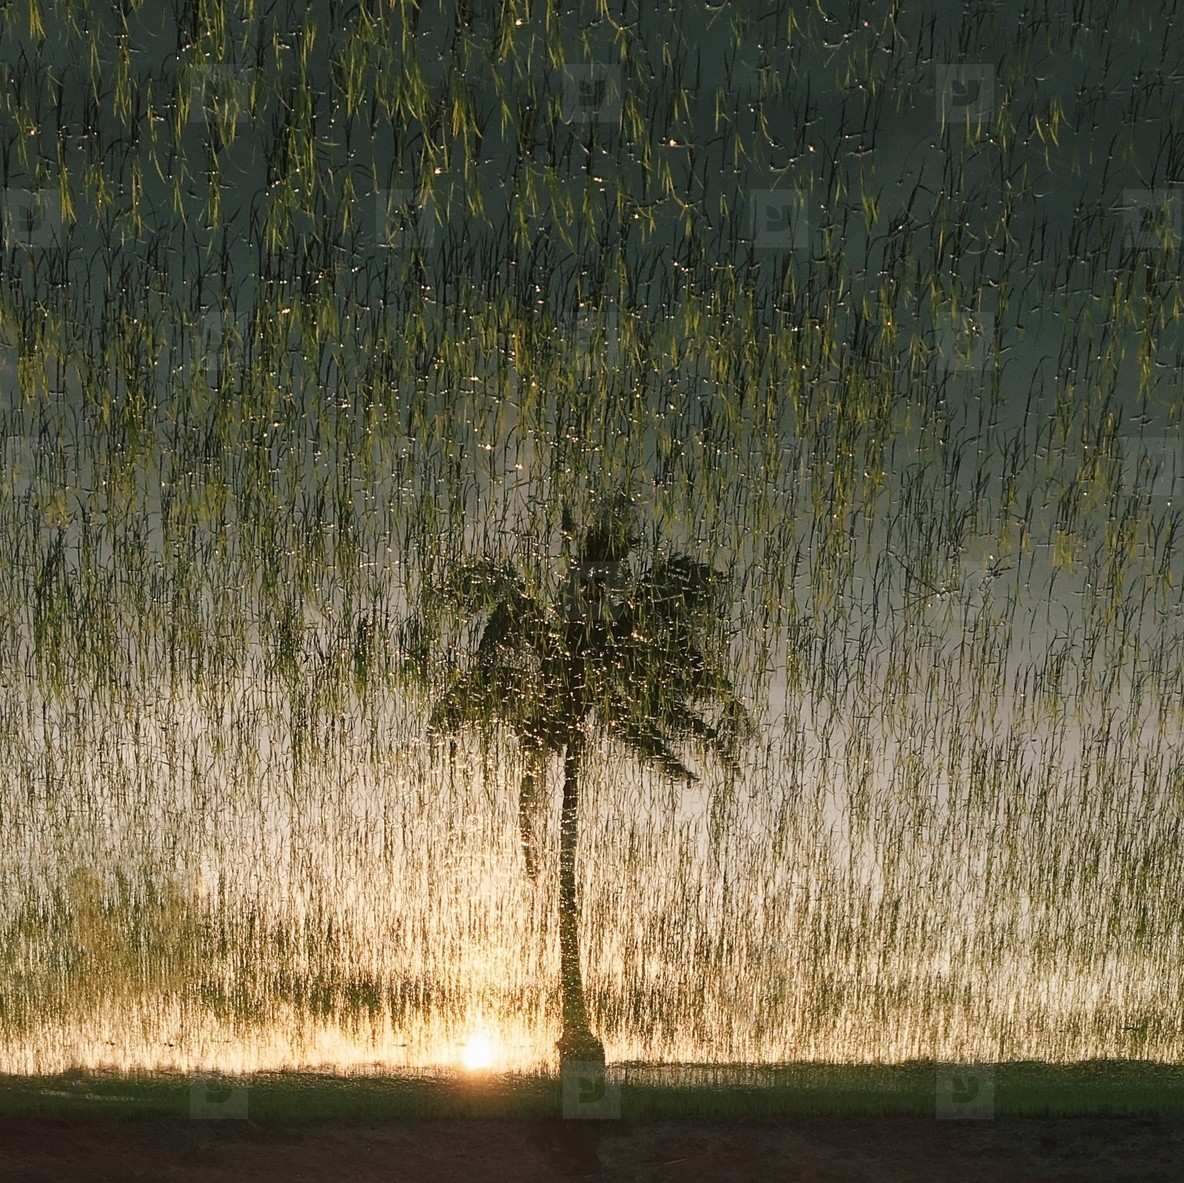 Reflections of palm tree